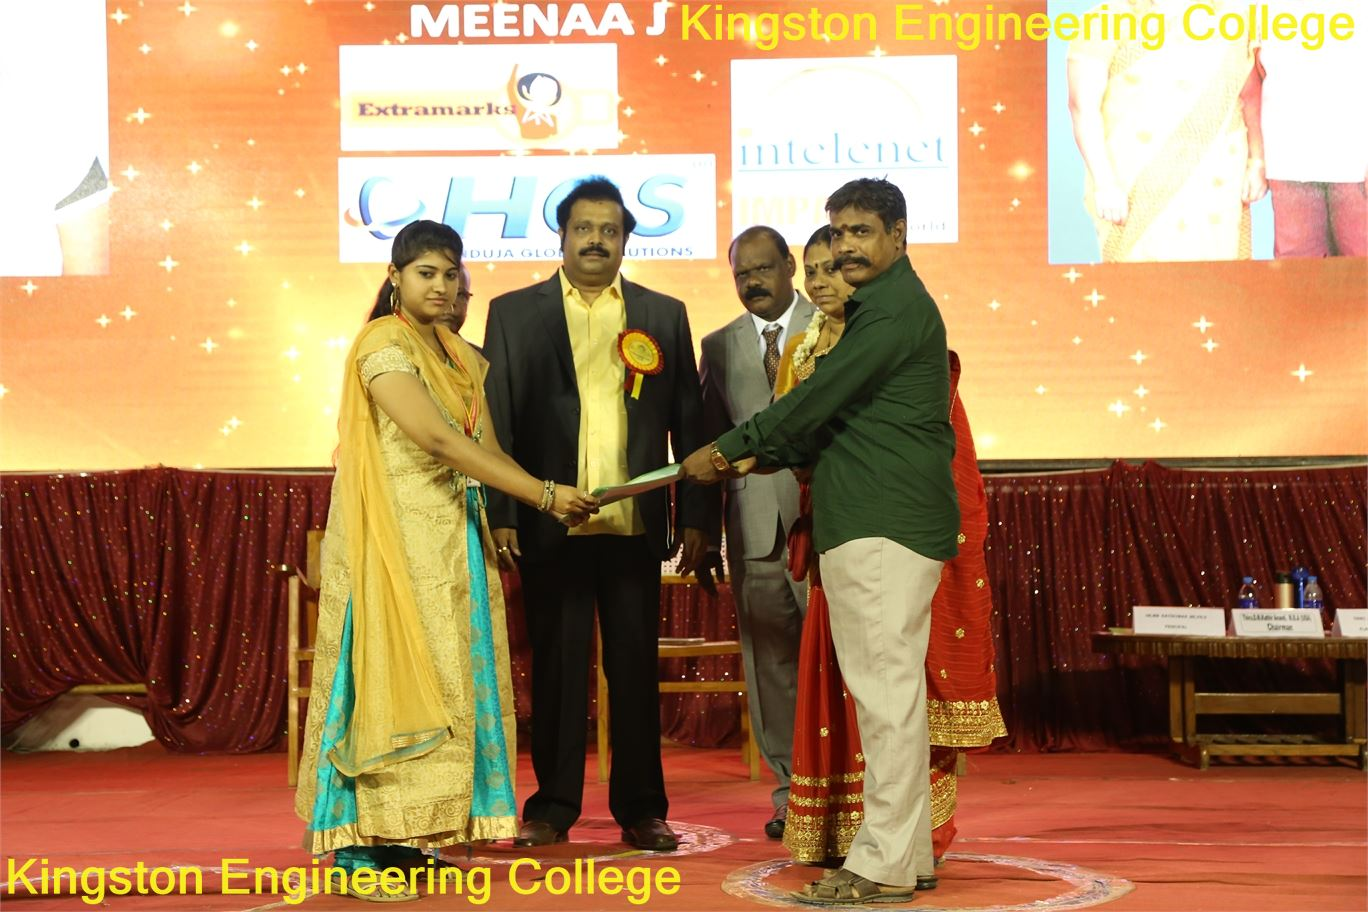 Kingston engineering college, Placement day 2018